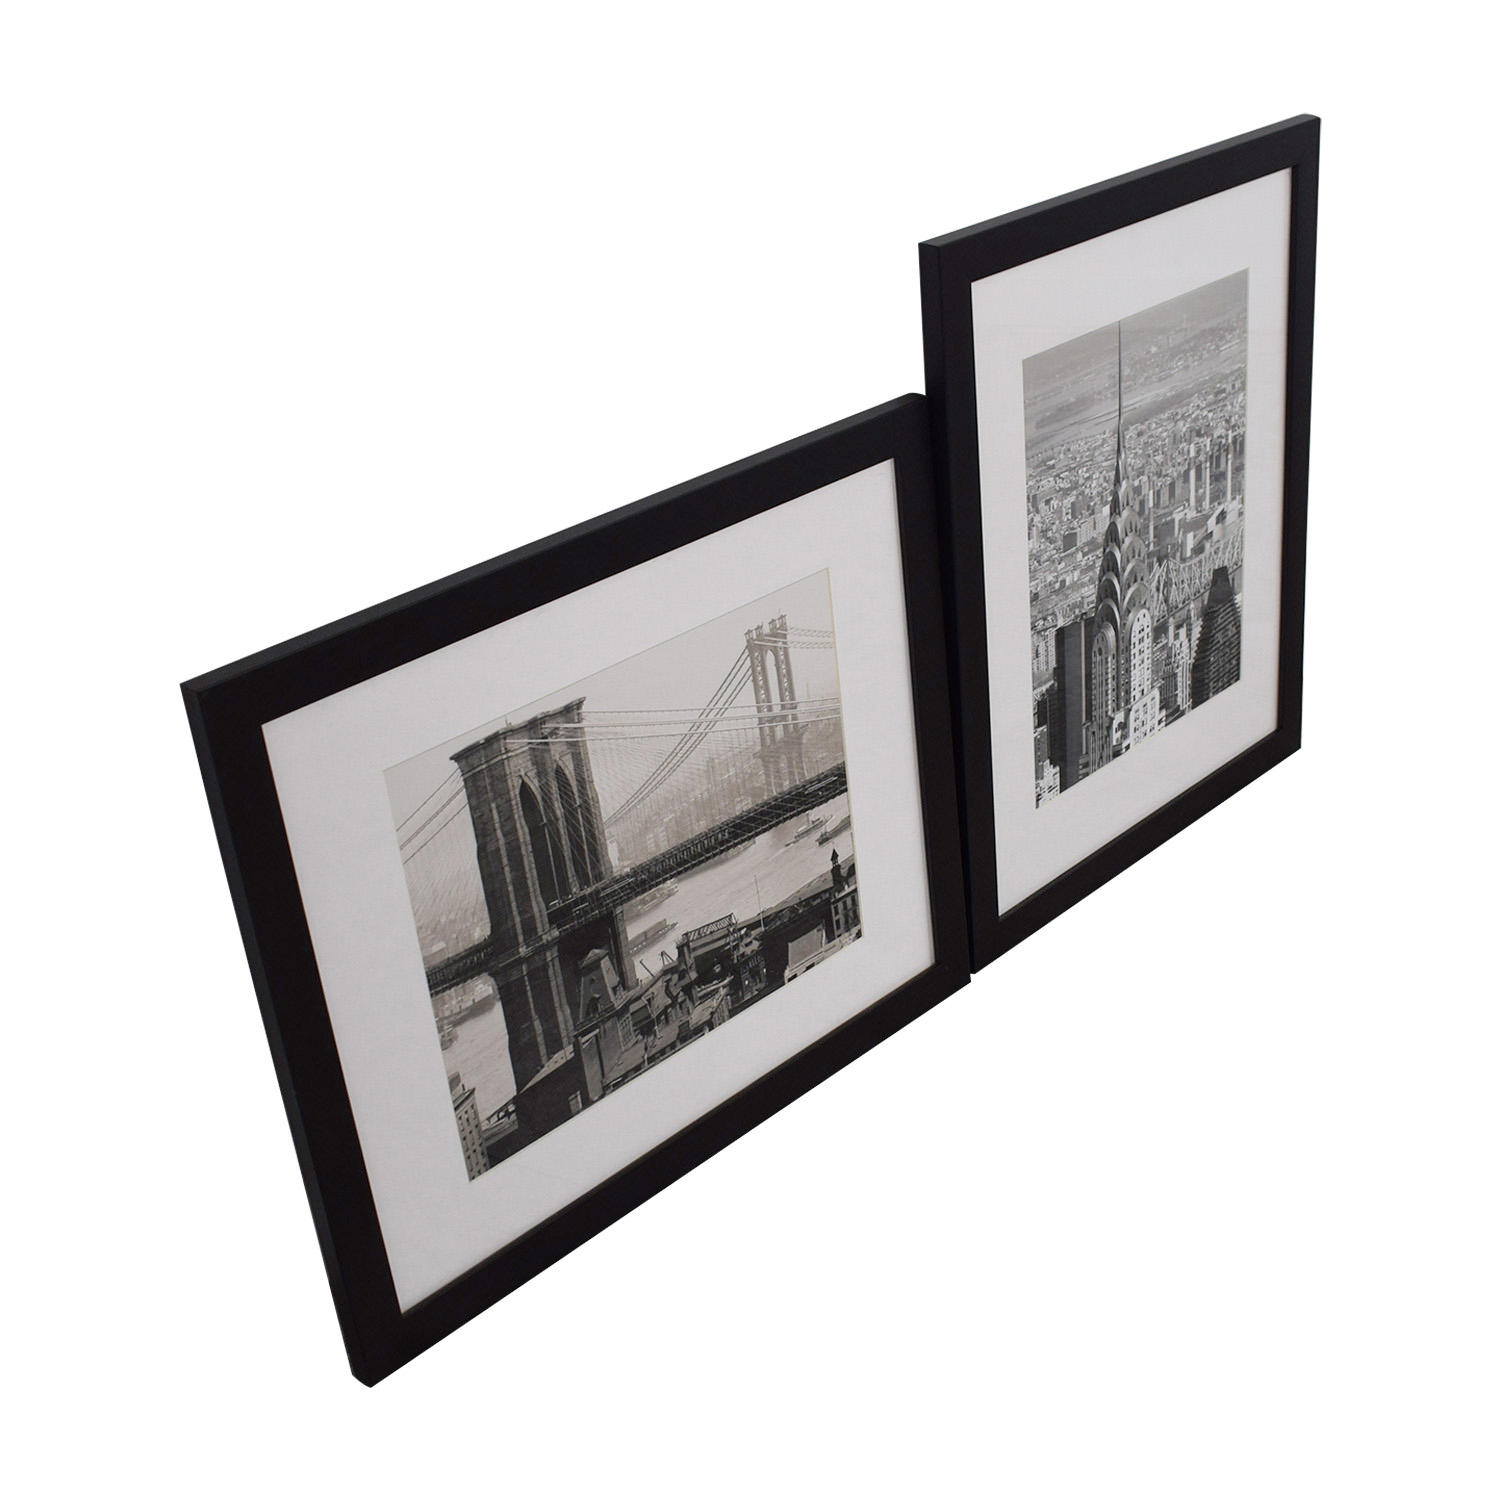 58% OFF - Framed Prints of NYC Skyline / Decor